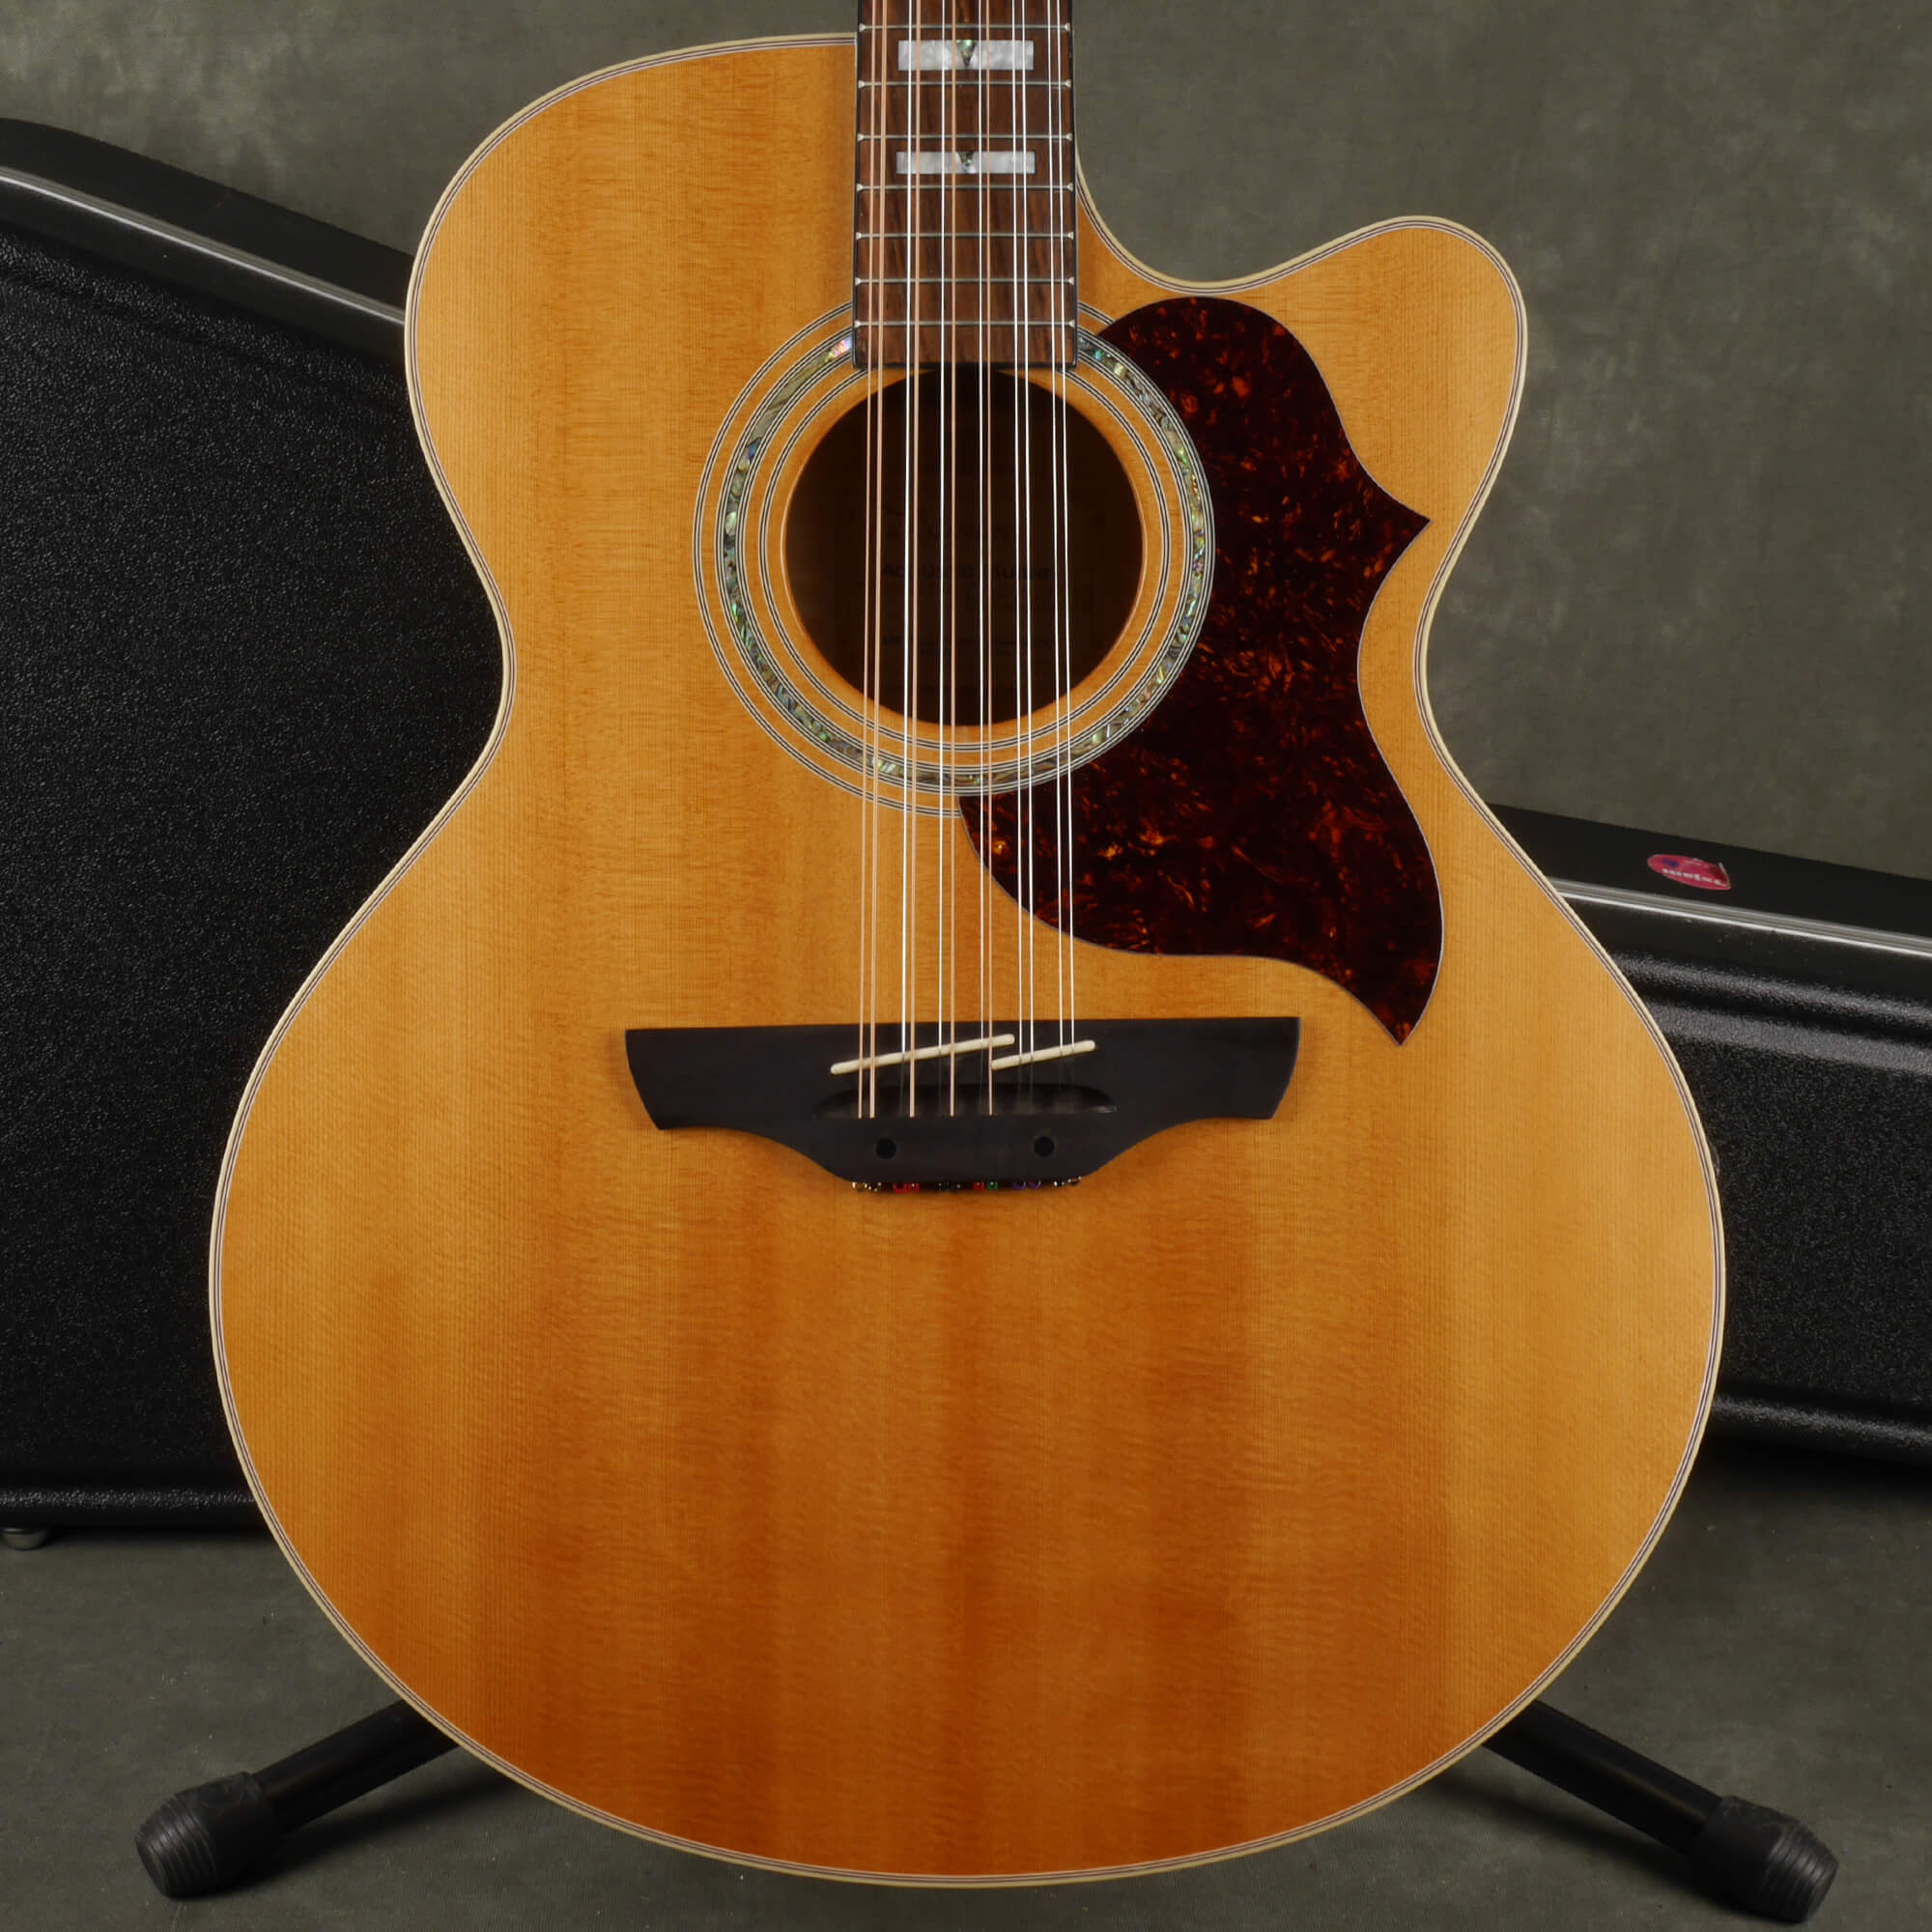 Takamine EG23SC 12 String Electro-Acoustic Guitar - Natural w/Case - 2nd Hand